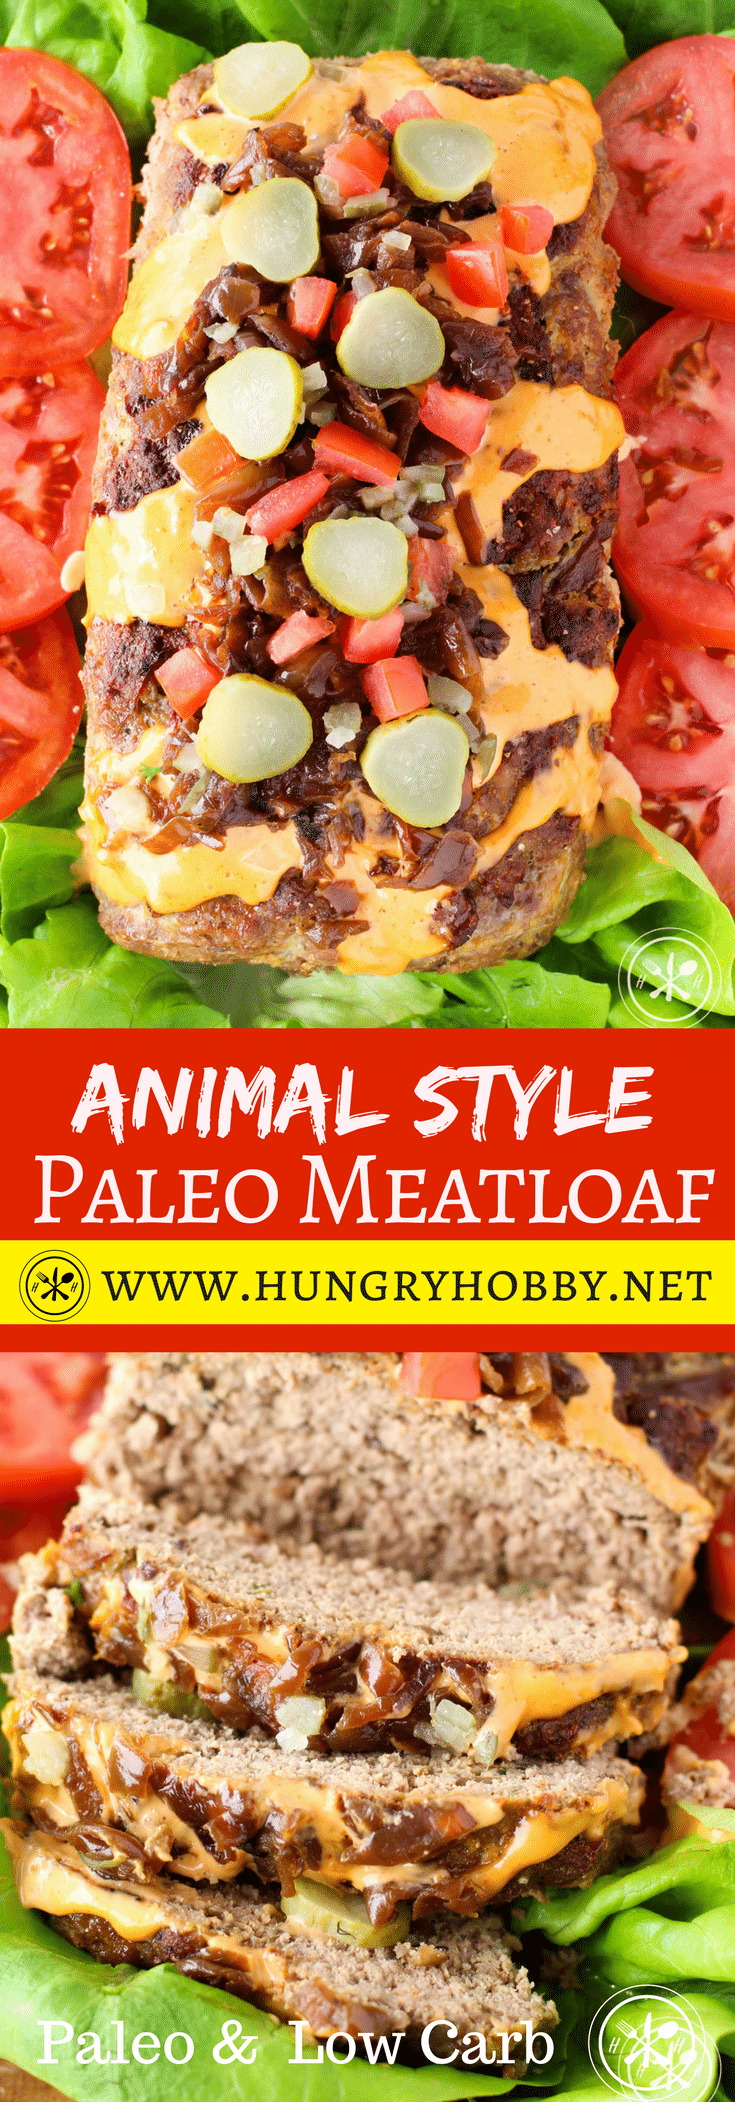 Meatloaf disguised as an animal style burger.  Filled and slathered with rich caramelized onions, crunchy sweet pickles, and tangy special sauce.  This meatloaf doesn't know it's a meatloaf! #glutenfree #paleo #lowcarb #hungryhobby